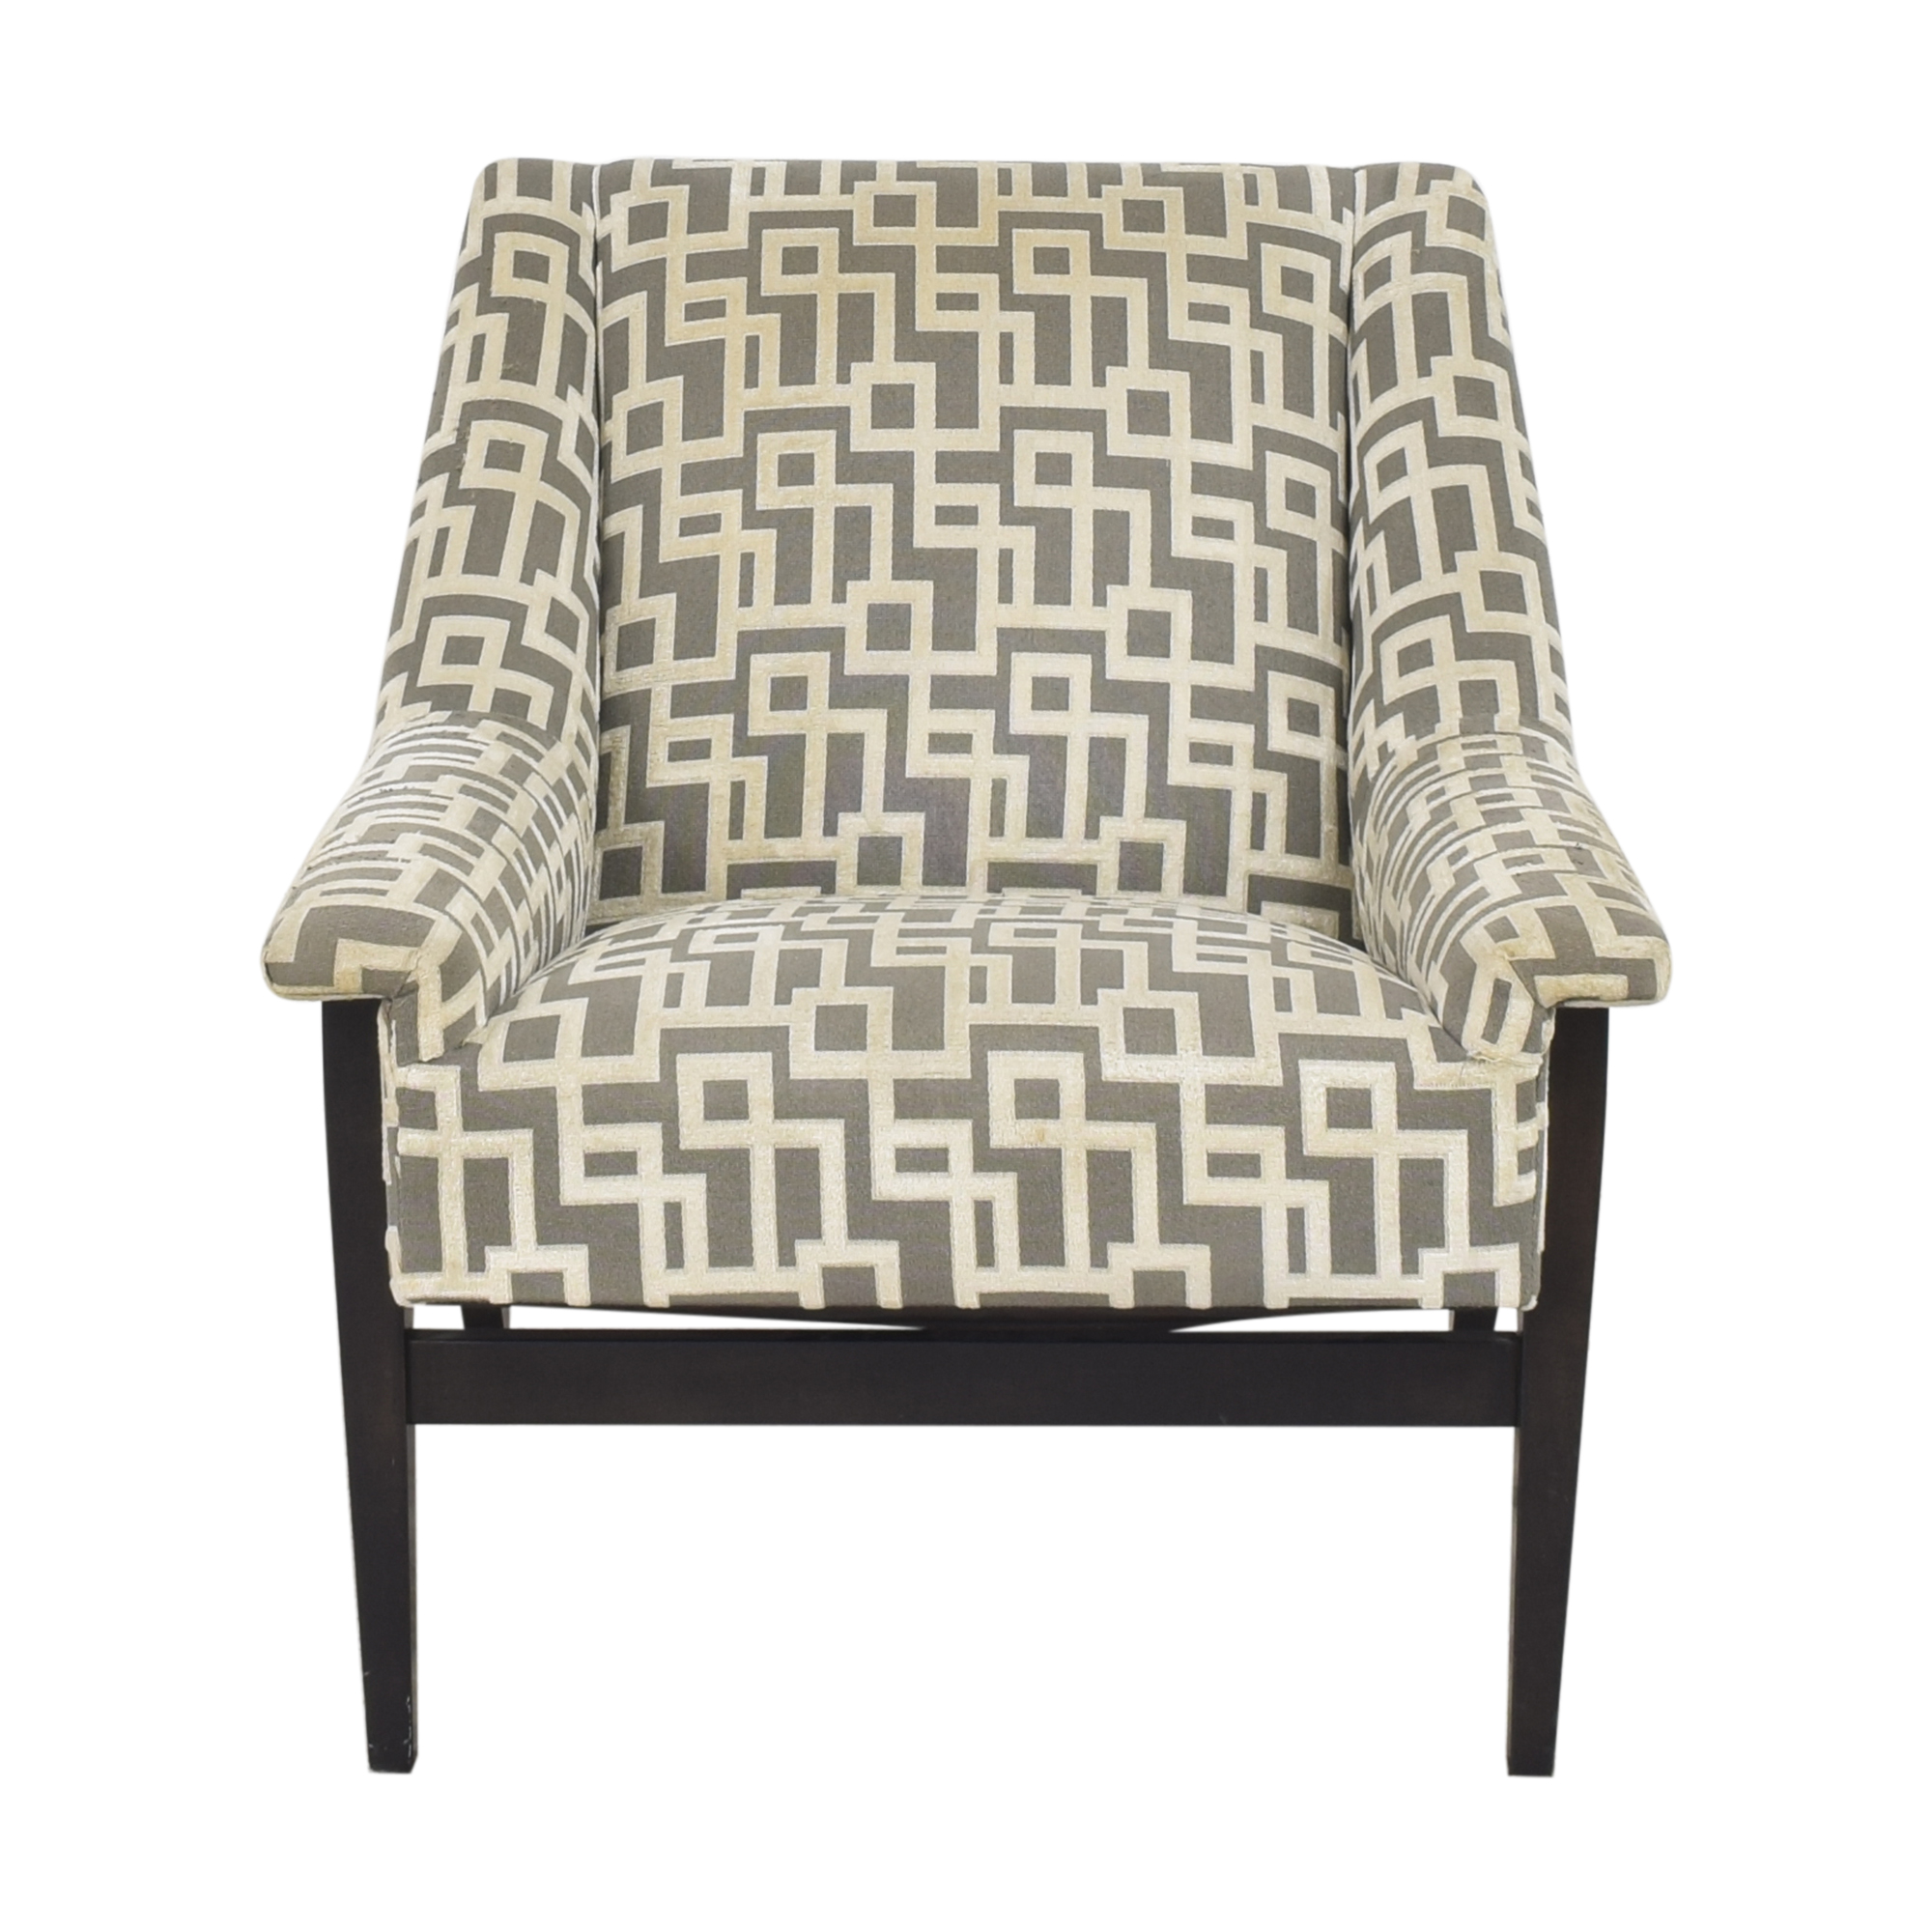 Kravet Kravet Custom Windham Chair coupon